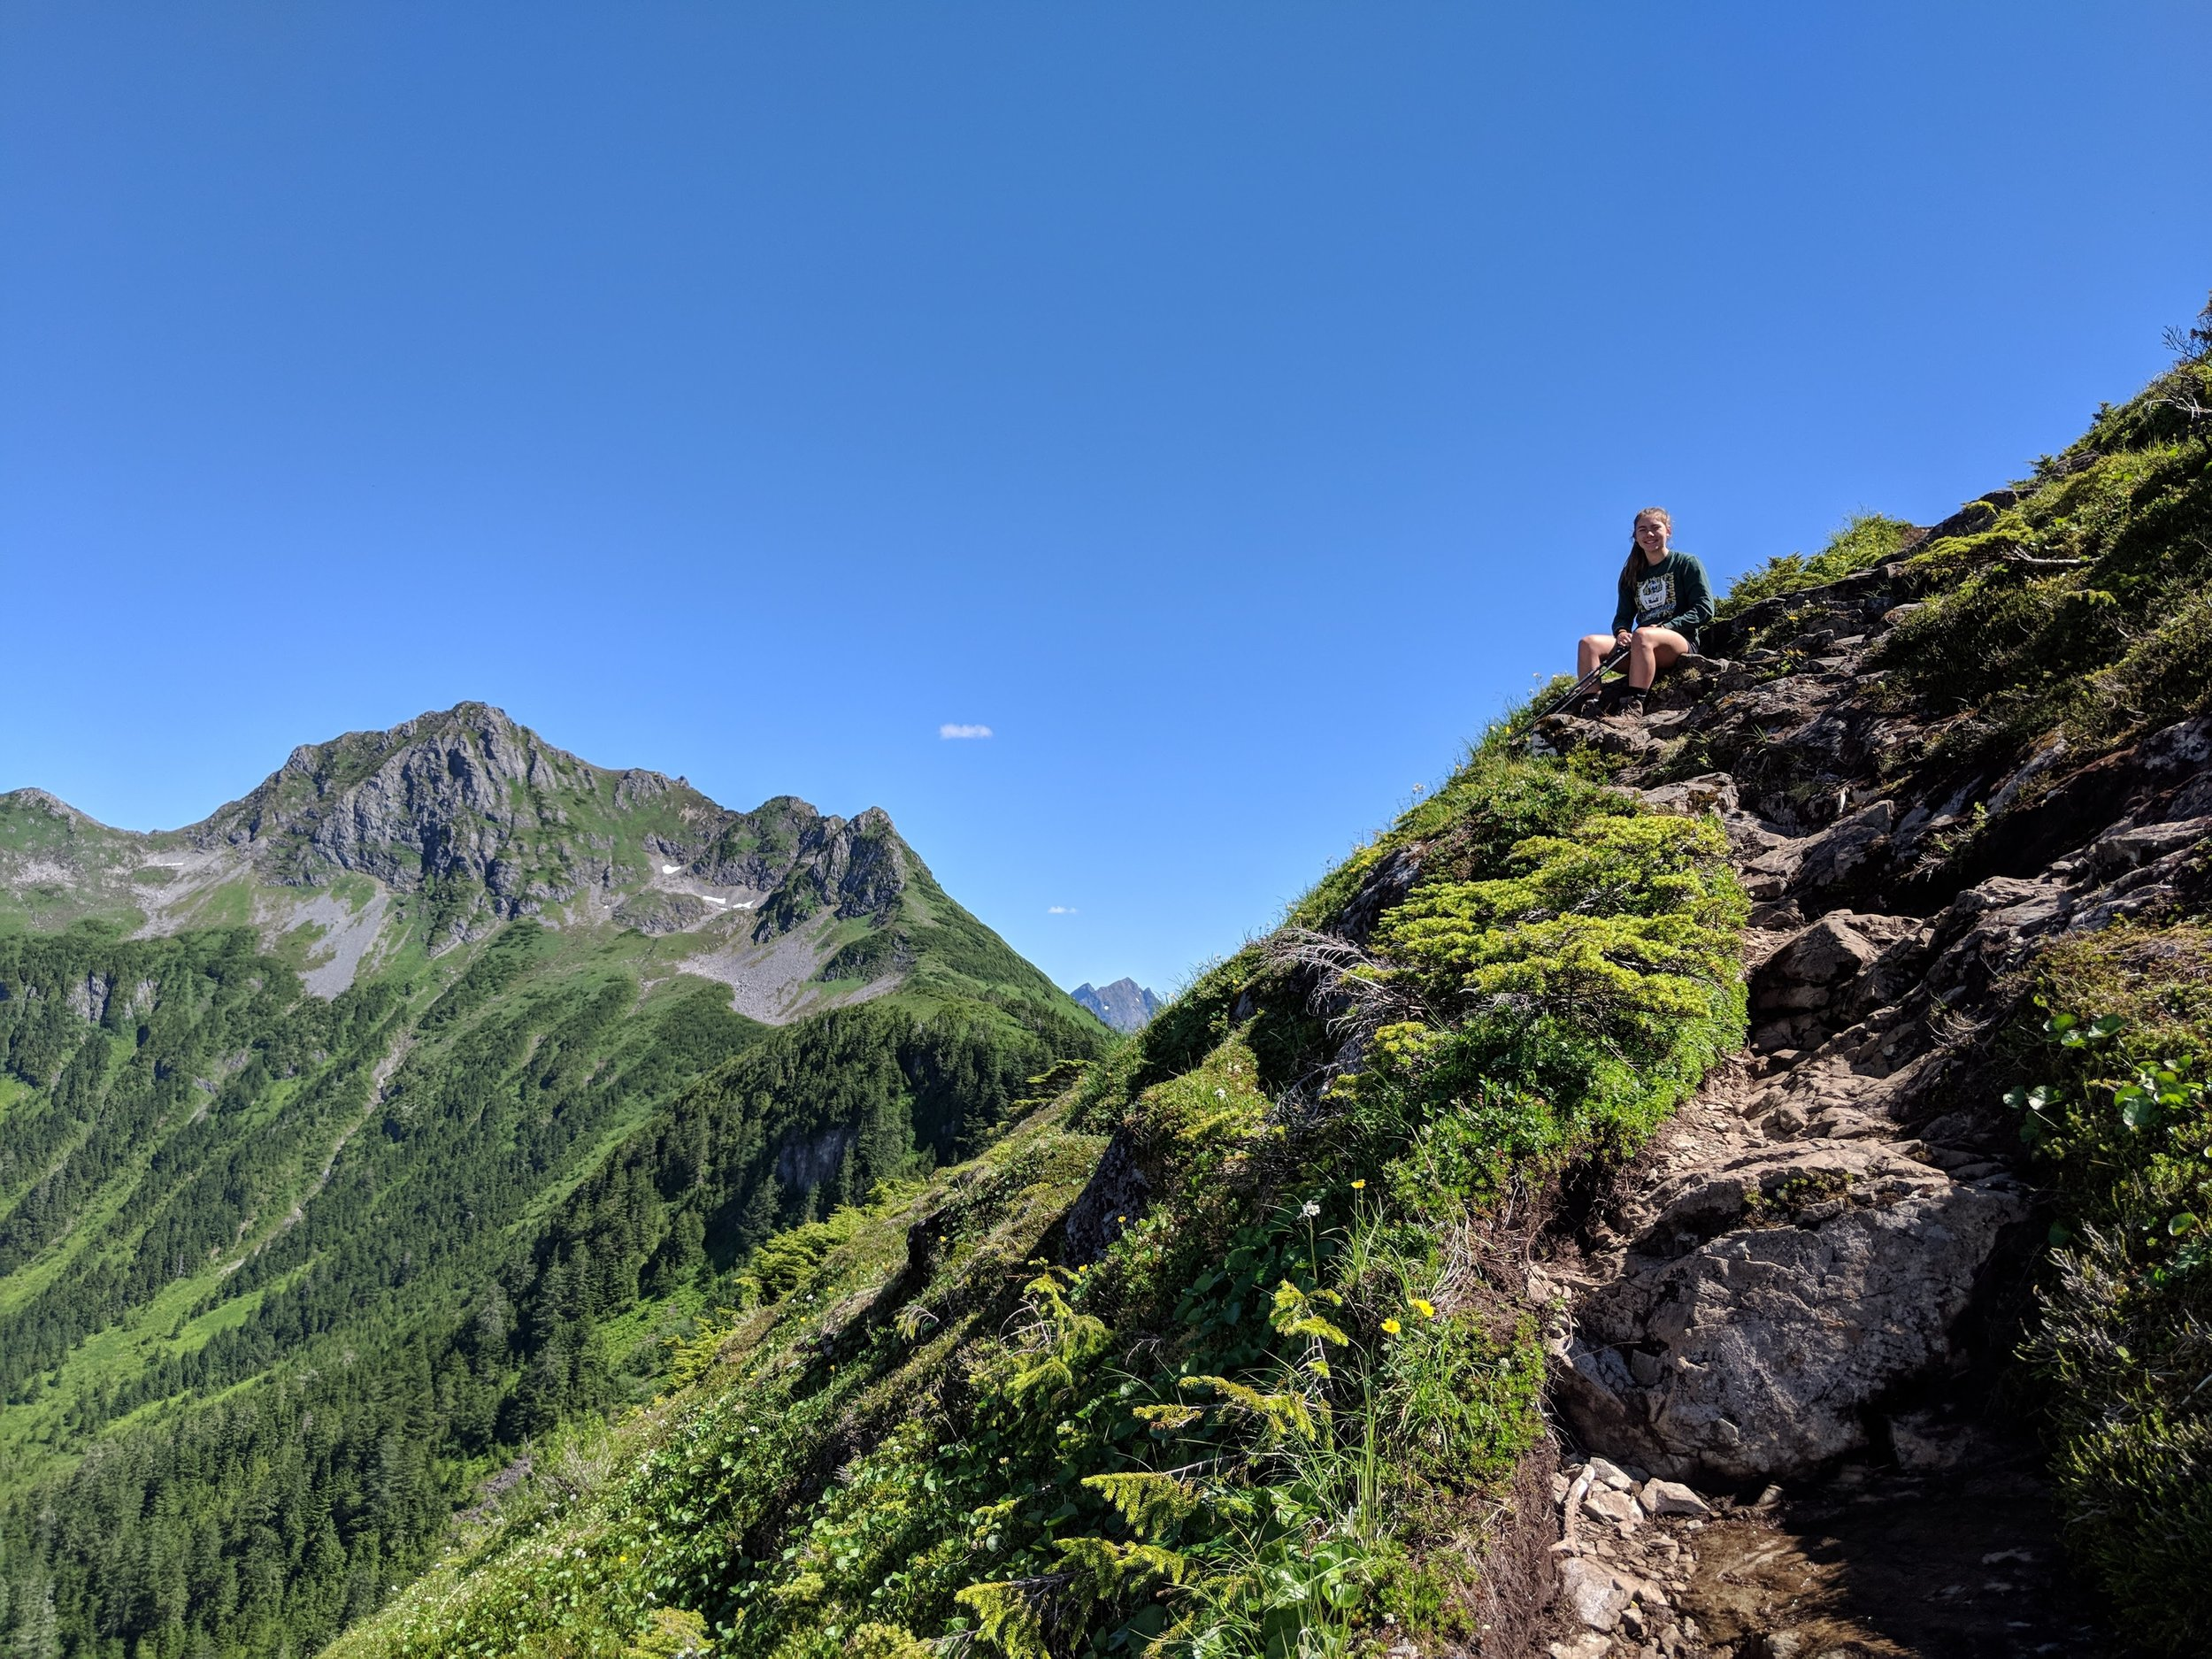 Roger's youngest daughter, Mykayla, after we finished climbing  Mt. Verstovia in Sitka, Alaska   @roger.cummings